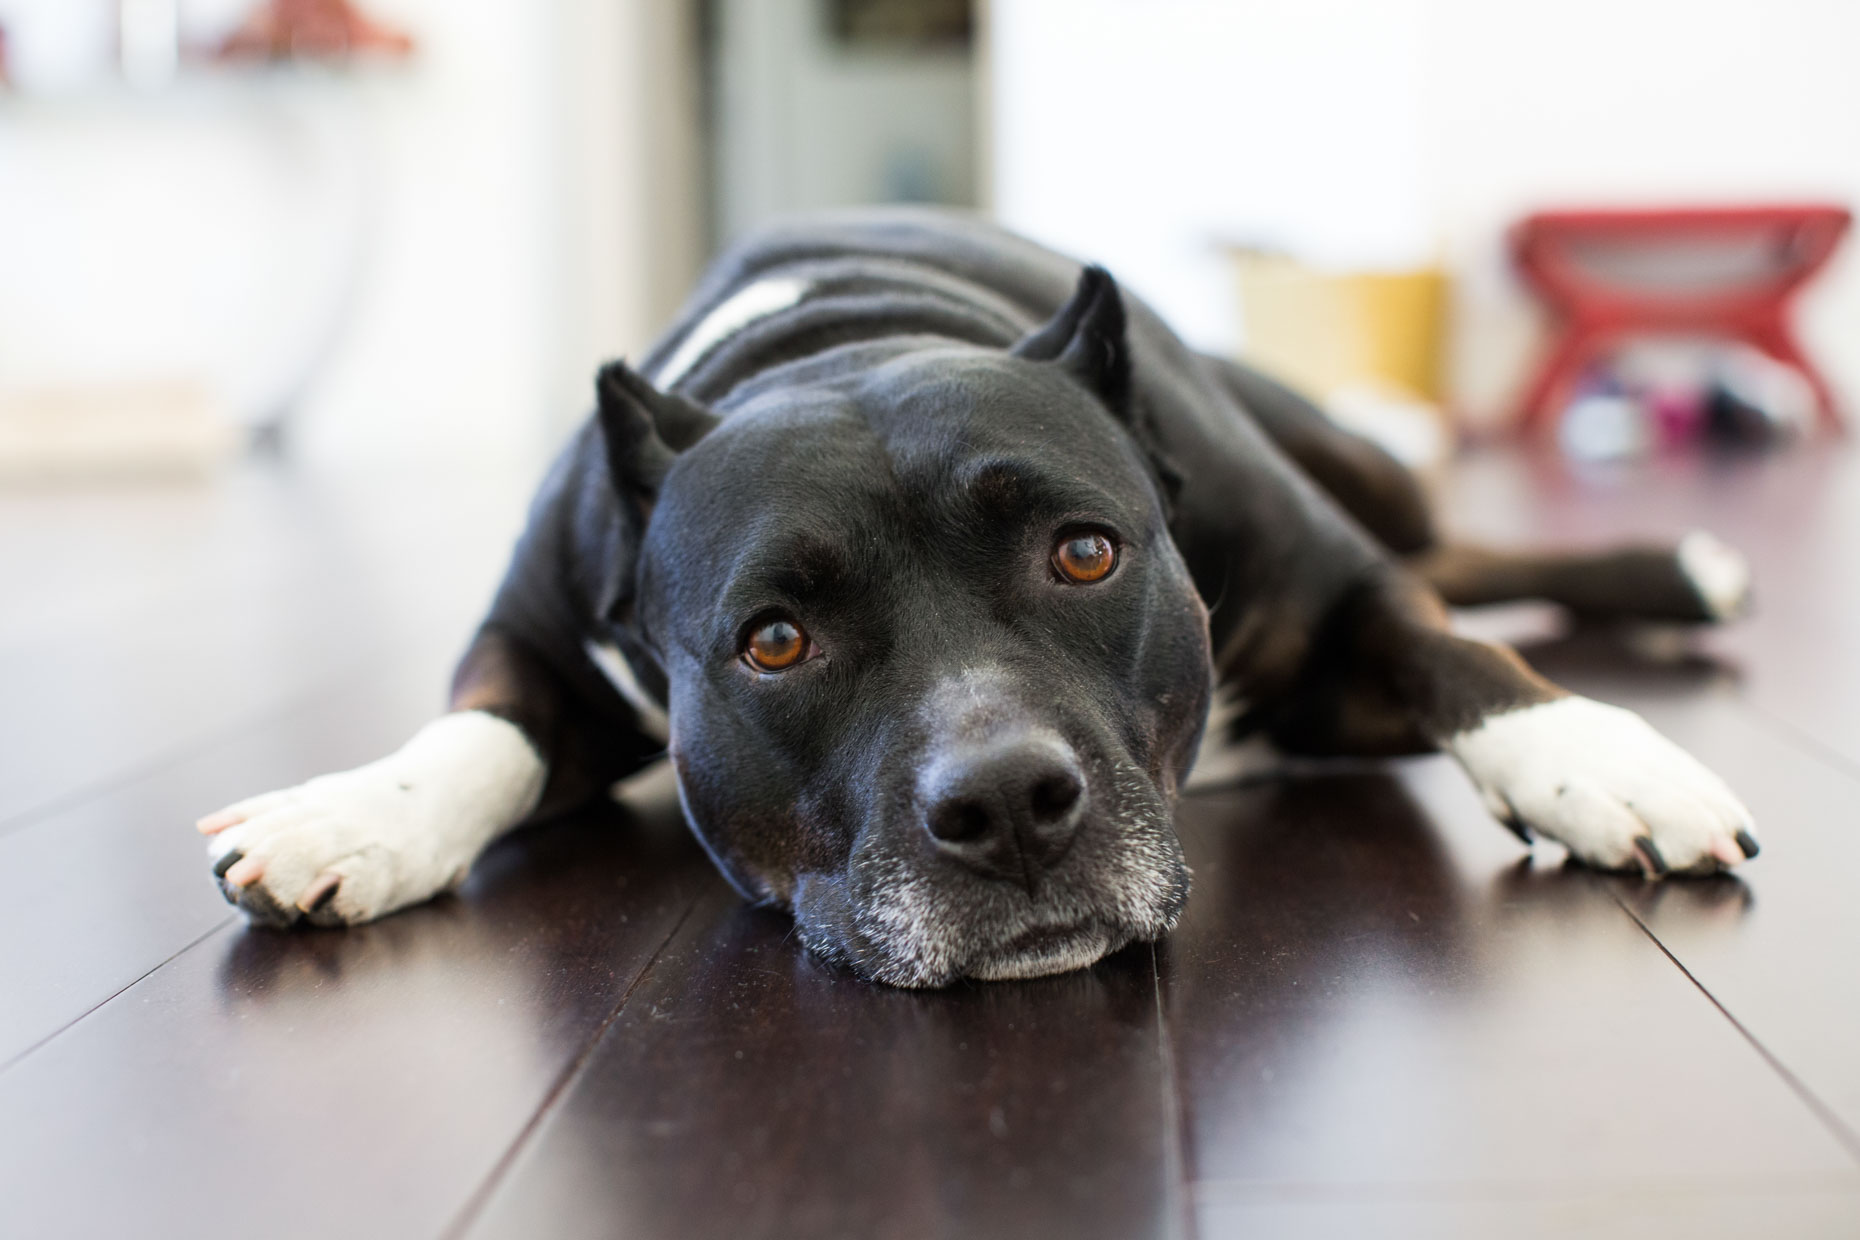 Dog and Pet Photography | Black Pit Bull Mix Dog by Mark Rogers